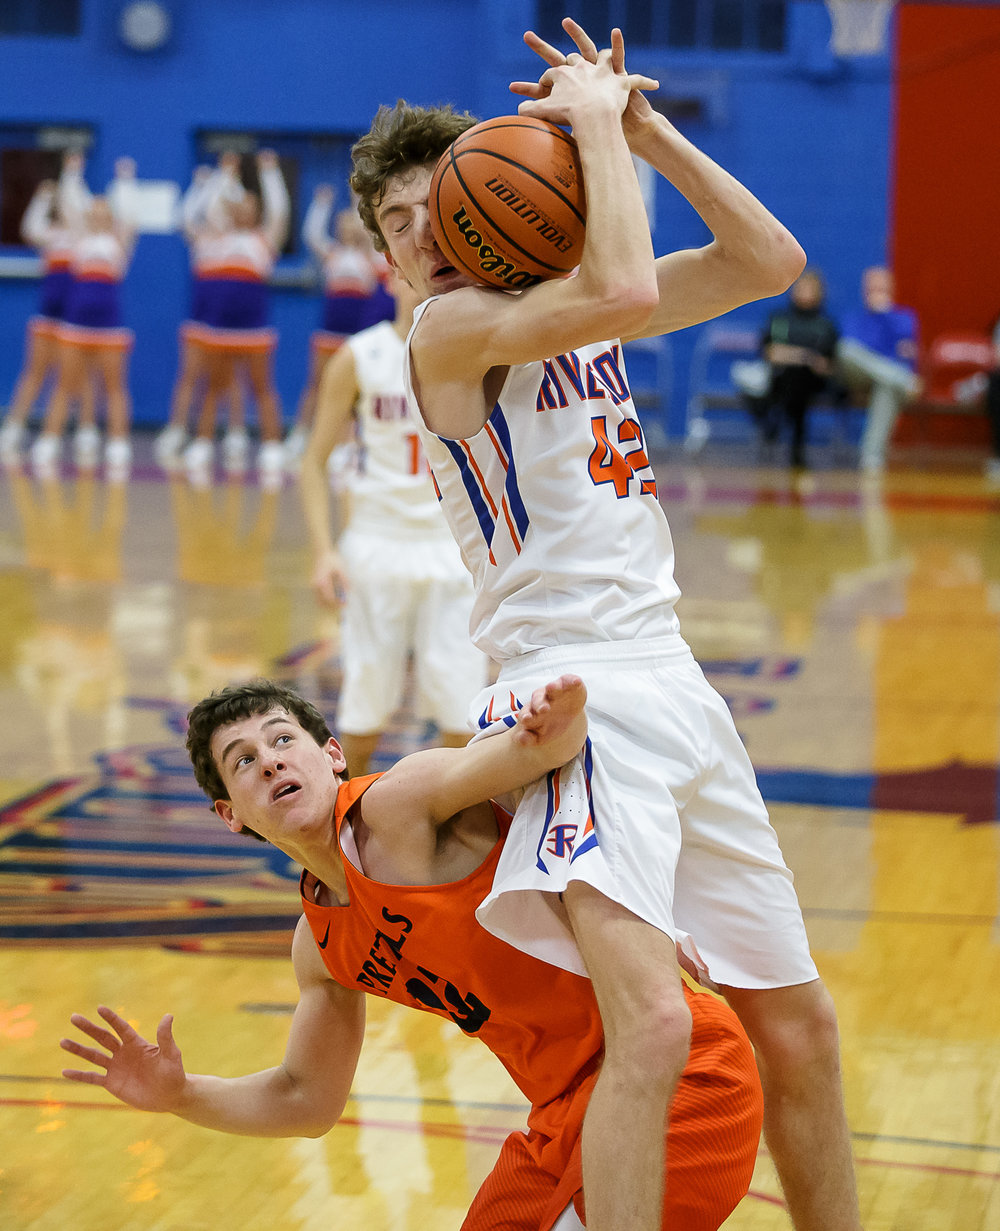 New Berlin's Connor Allen (22) fouls Riverton's Spencer Yoggerst (42) as he slides underneath him in the first half during the semifinals of the Boys Sangamon County Tournament at Lincoln Land Community College's Cass Gymnasium, Wednesday, Jan. 10, 2018, in Springfield, Ill. [Justin L. Fowler/The State Journal-Register]